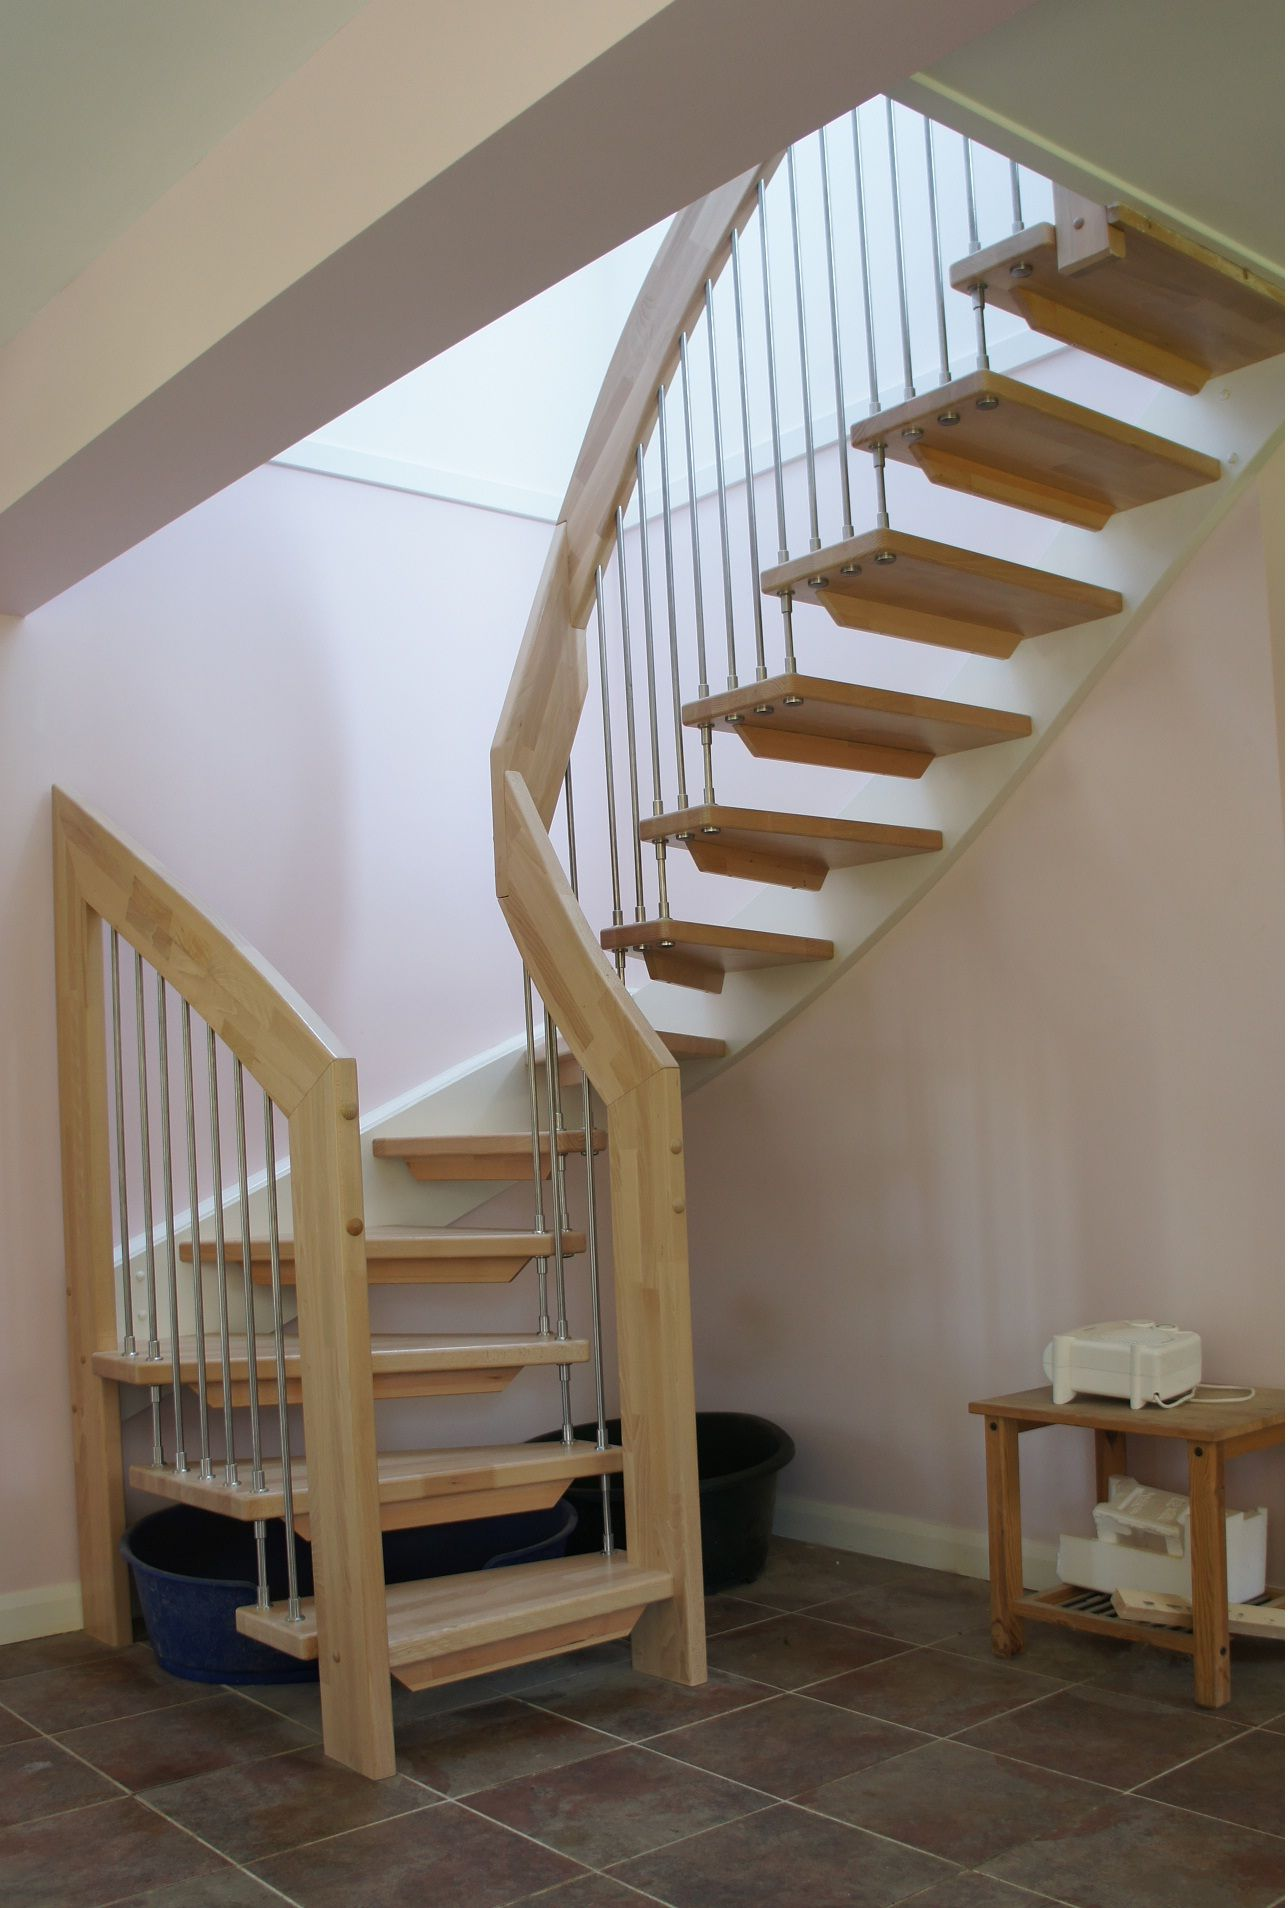 Staircase Ideas For Small Spaces Staircase Ideas Category For Consideration Staircase Designs For Staircase Design For Small House Spiral Staircase Home Design Diseno De Escaleras Interiores Armario Debajo De Las Escaleras